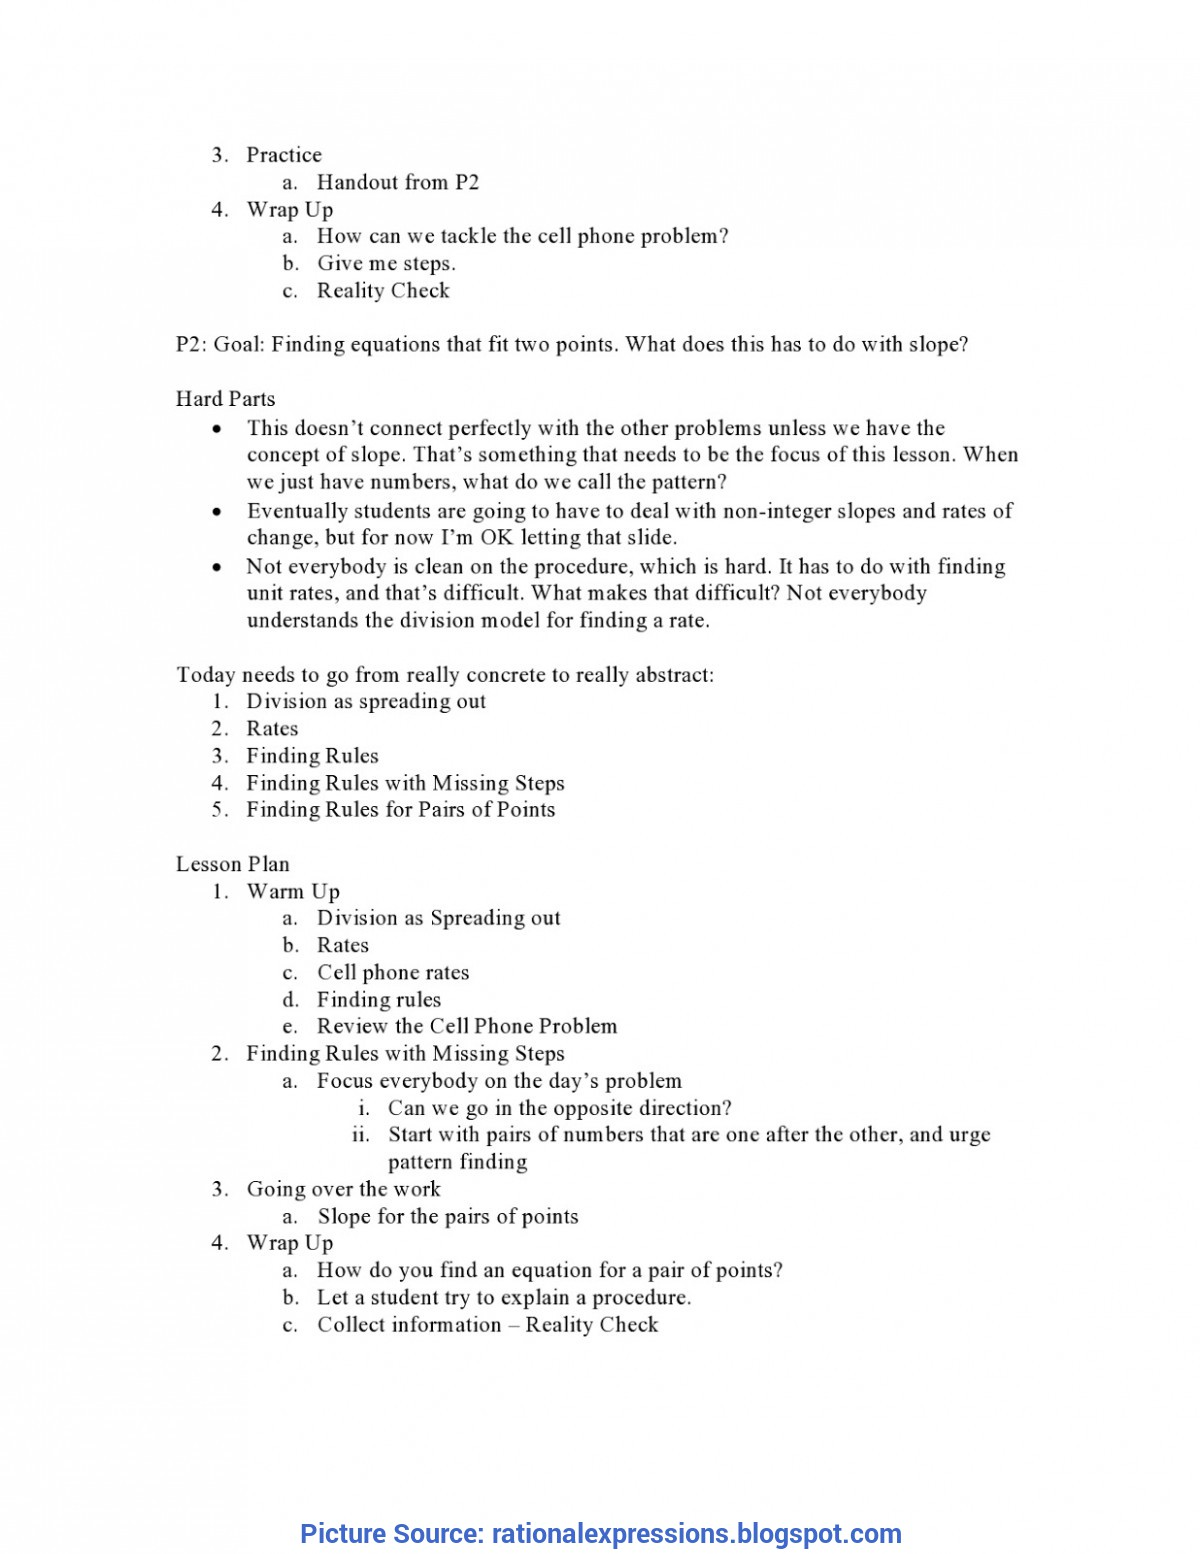 Best Model Lesson Plan For Science 5e Lesson Plan Template